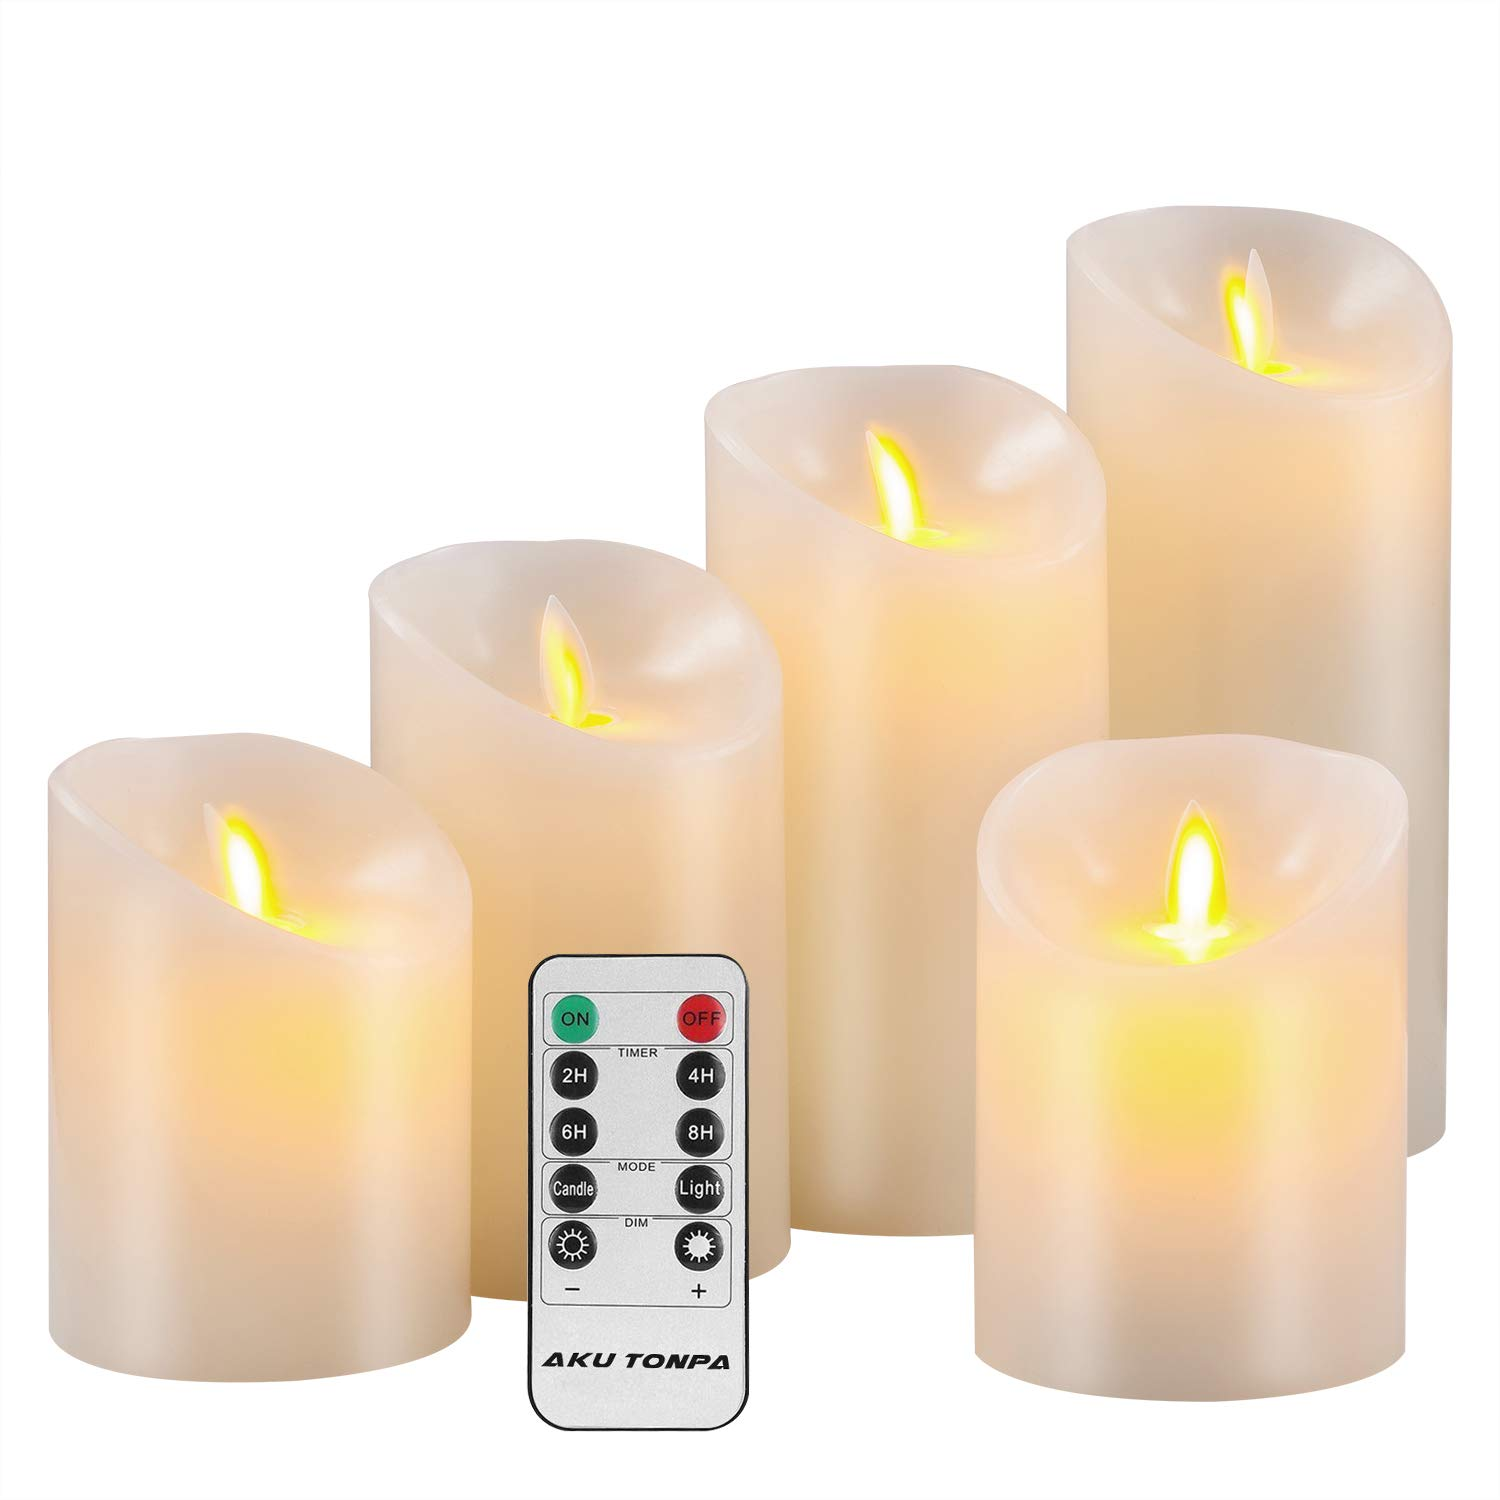 Aku Tonpa Flameless Candles Battery Operated Pillar Real Wax Flickering Moving Wick Electric LED Candle Gift Sets with Remote Control Cycling 24 Hours Timer, 4'' 4'' 5'' 6'' 7'' Pack of 5 by Aku Tonpa